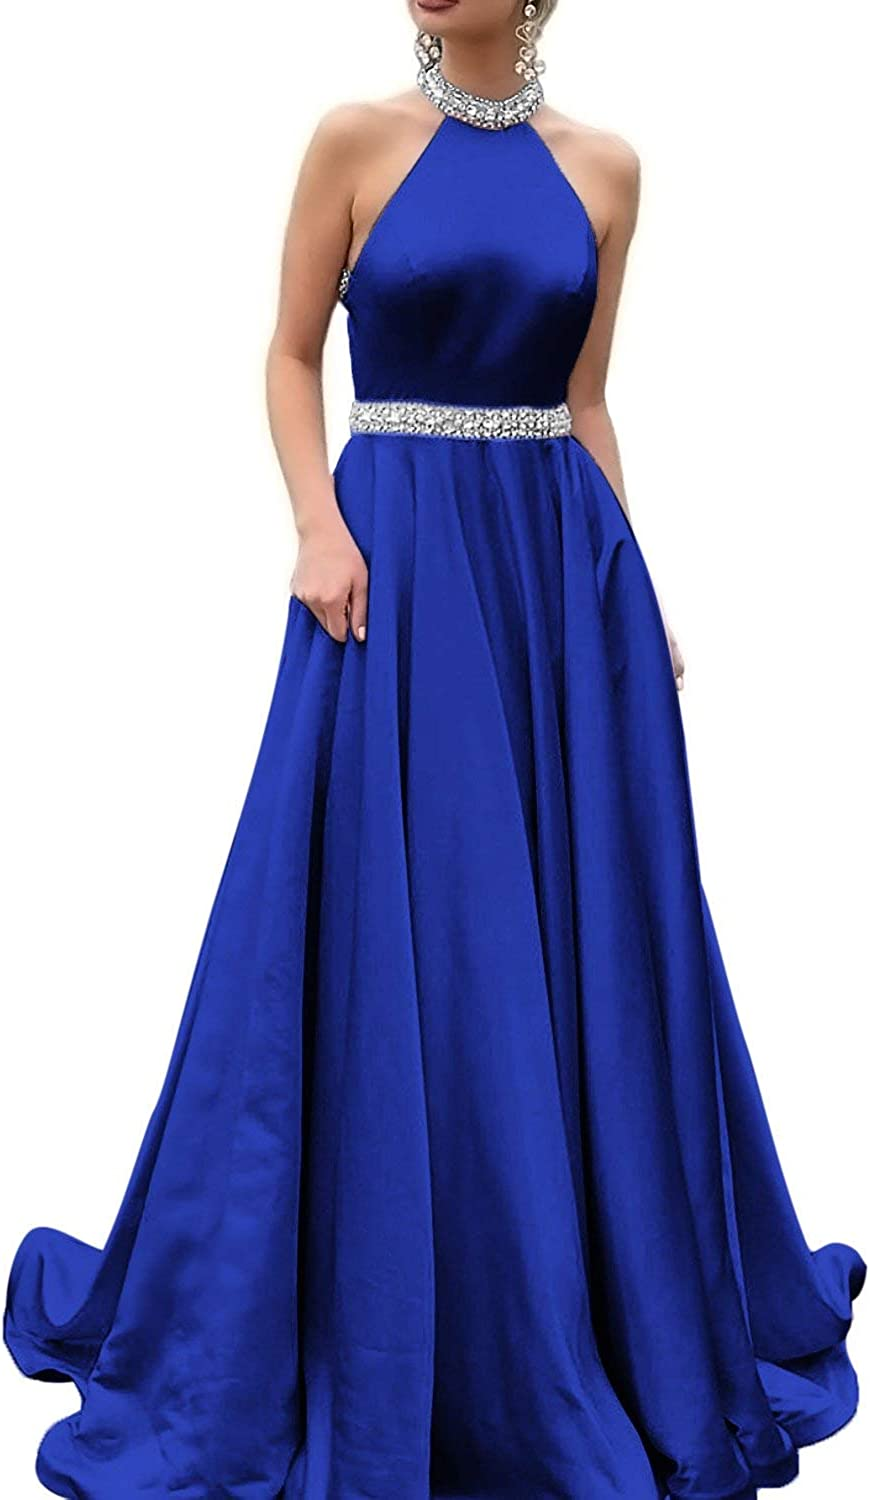 Sulidi Womens Halter Neckline Backless Prom Dresses Rhinestone Beaded Formal Satin Evening Ball Gown C001